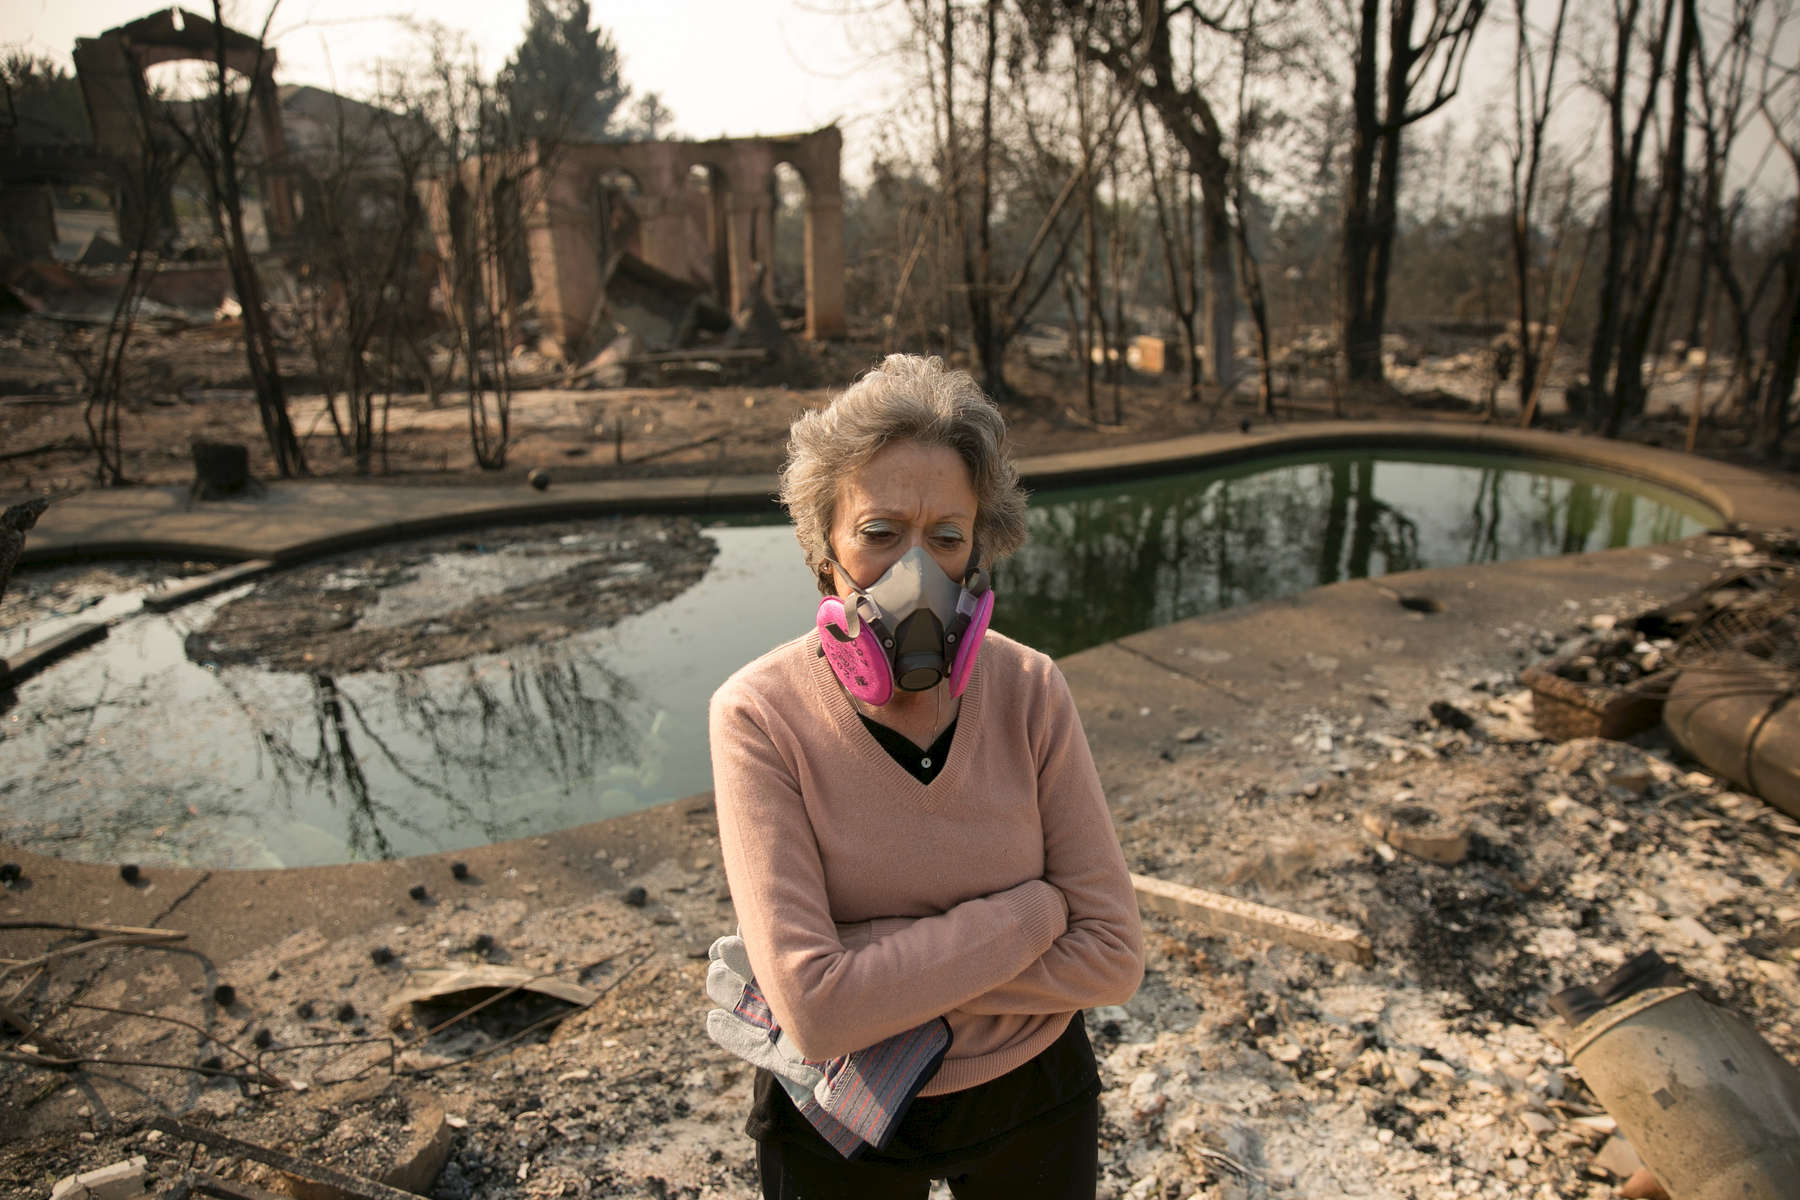 Santa Rosa, CA - October 11, 2017: Patti Hurley returned to her home in the Fountaingrove section of Santa Rosa, Calif. Hurley, with her husband Patrick and two children, lived in the two-story home for 26 years before it burned to the ground during this week's wildfires. CREDIT: Kevin Hagen for The New York Times